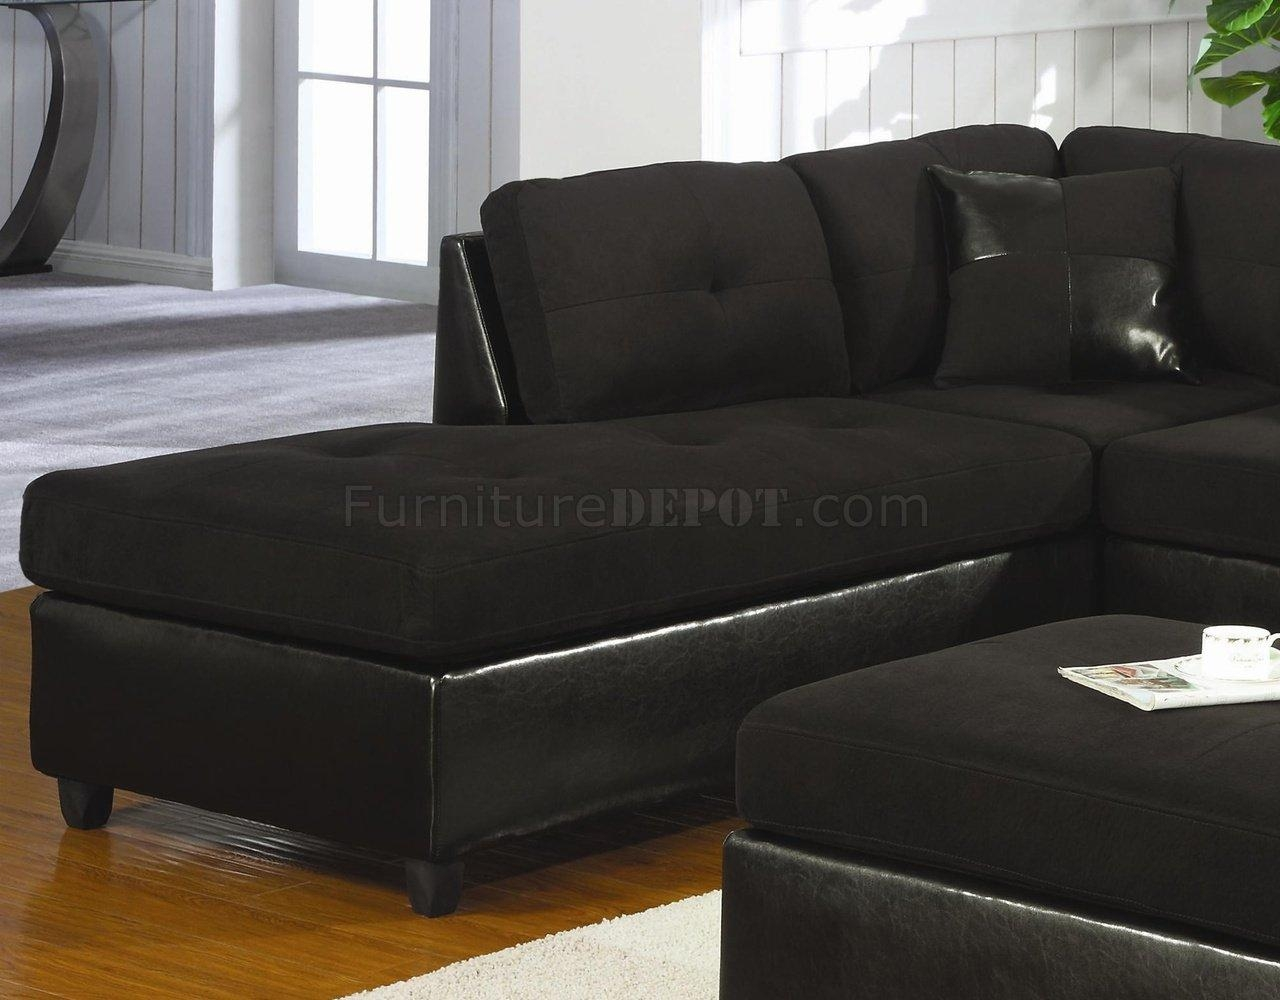 Sofa: Oversize Sofas | Oversized Couch | Extra Large Sectional With Big Comfy Sofas (Image 17 of 25)